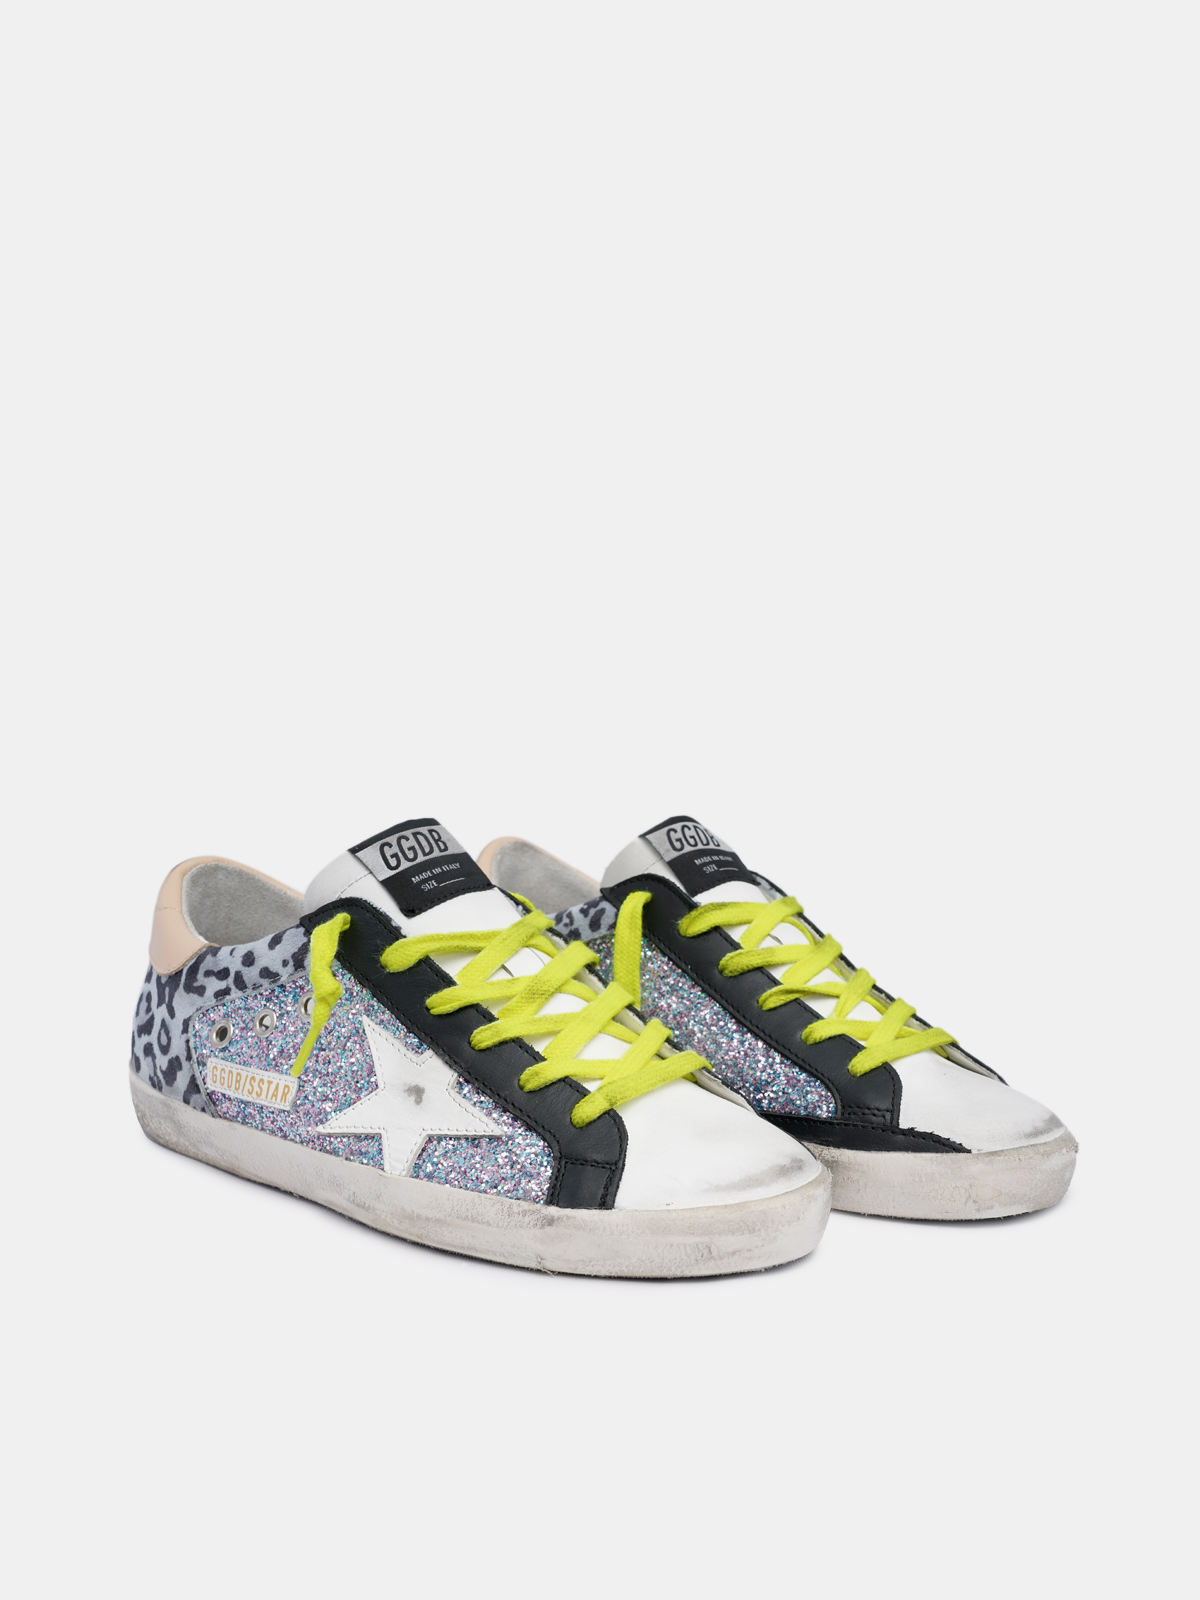 Golden Goose - Sneakers Super-Star leopardate e glitter in